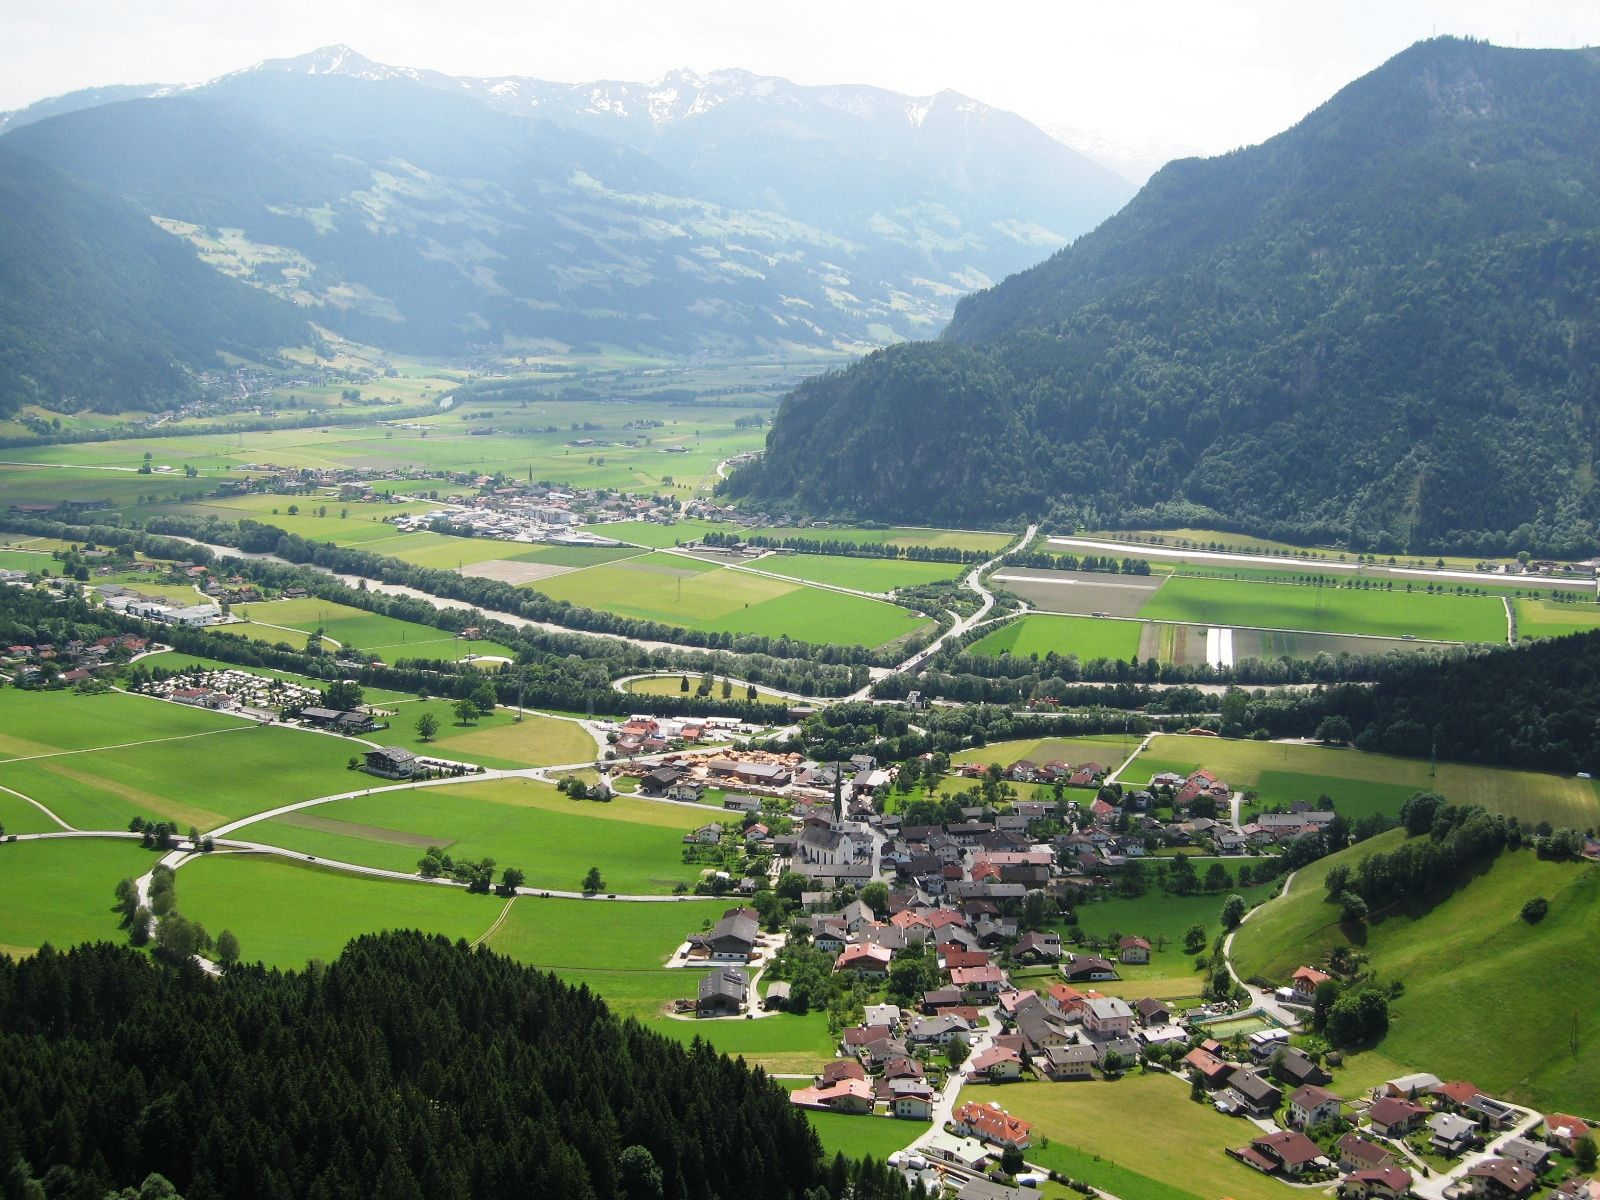 Ahhh...the Inntal, Austria...can't wait for the day that I'm back here soaking up the view ♥